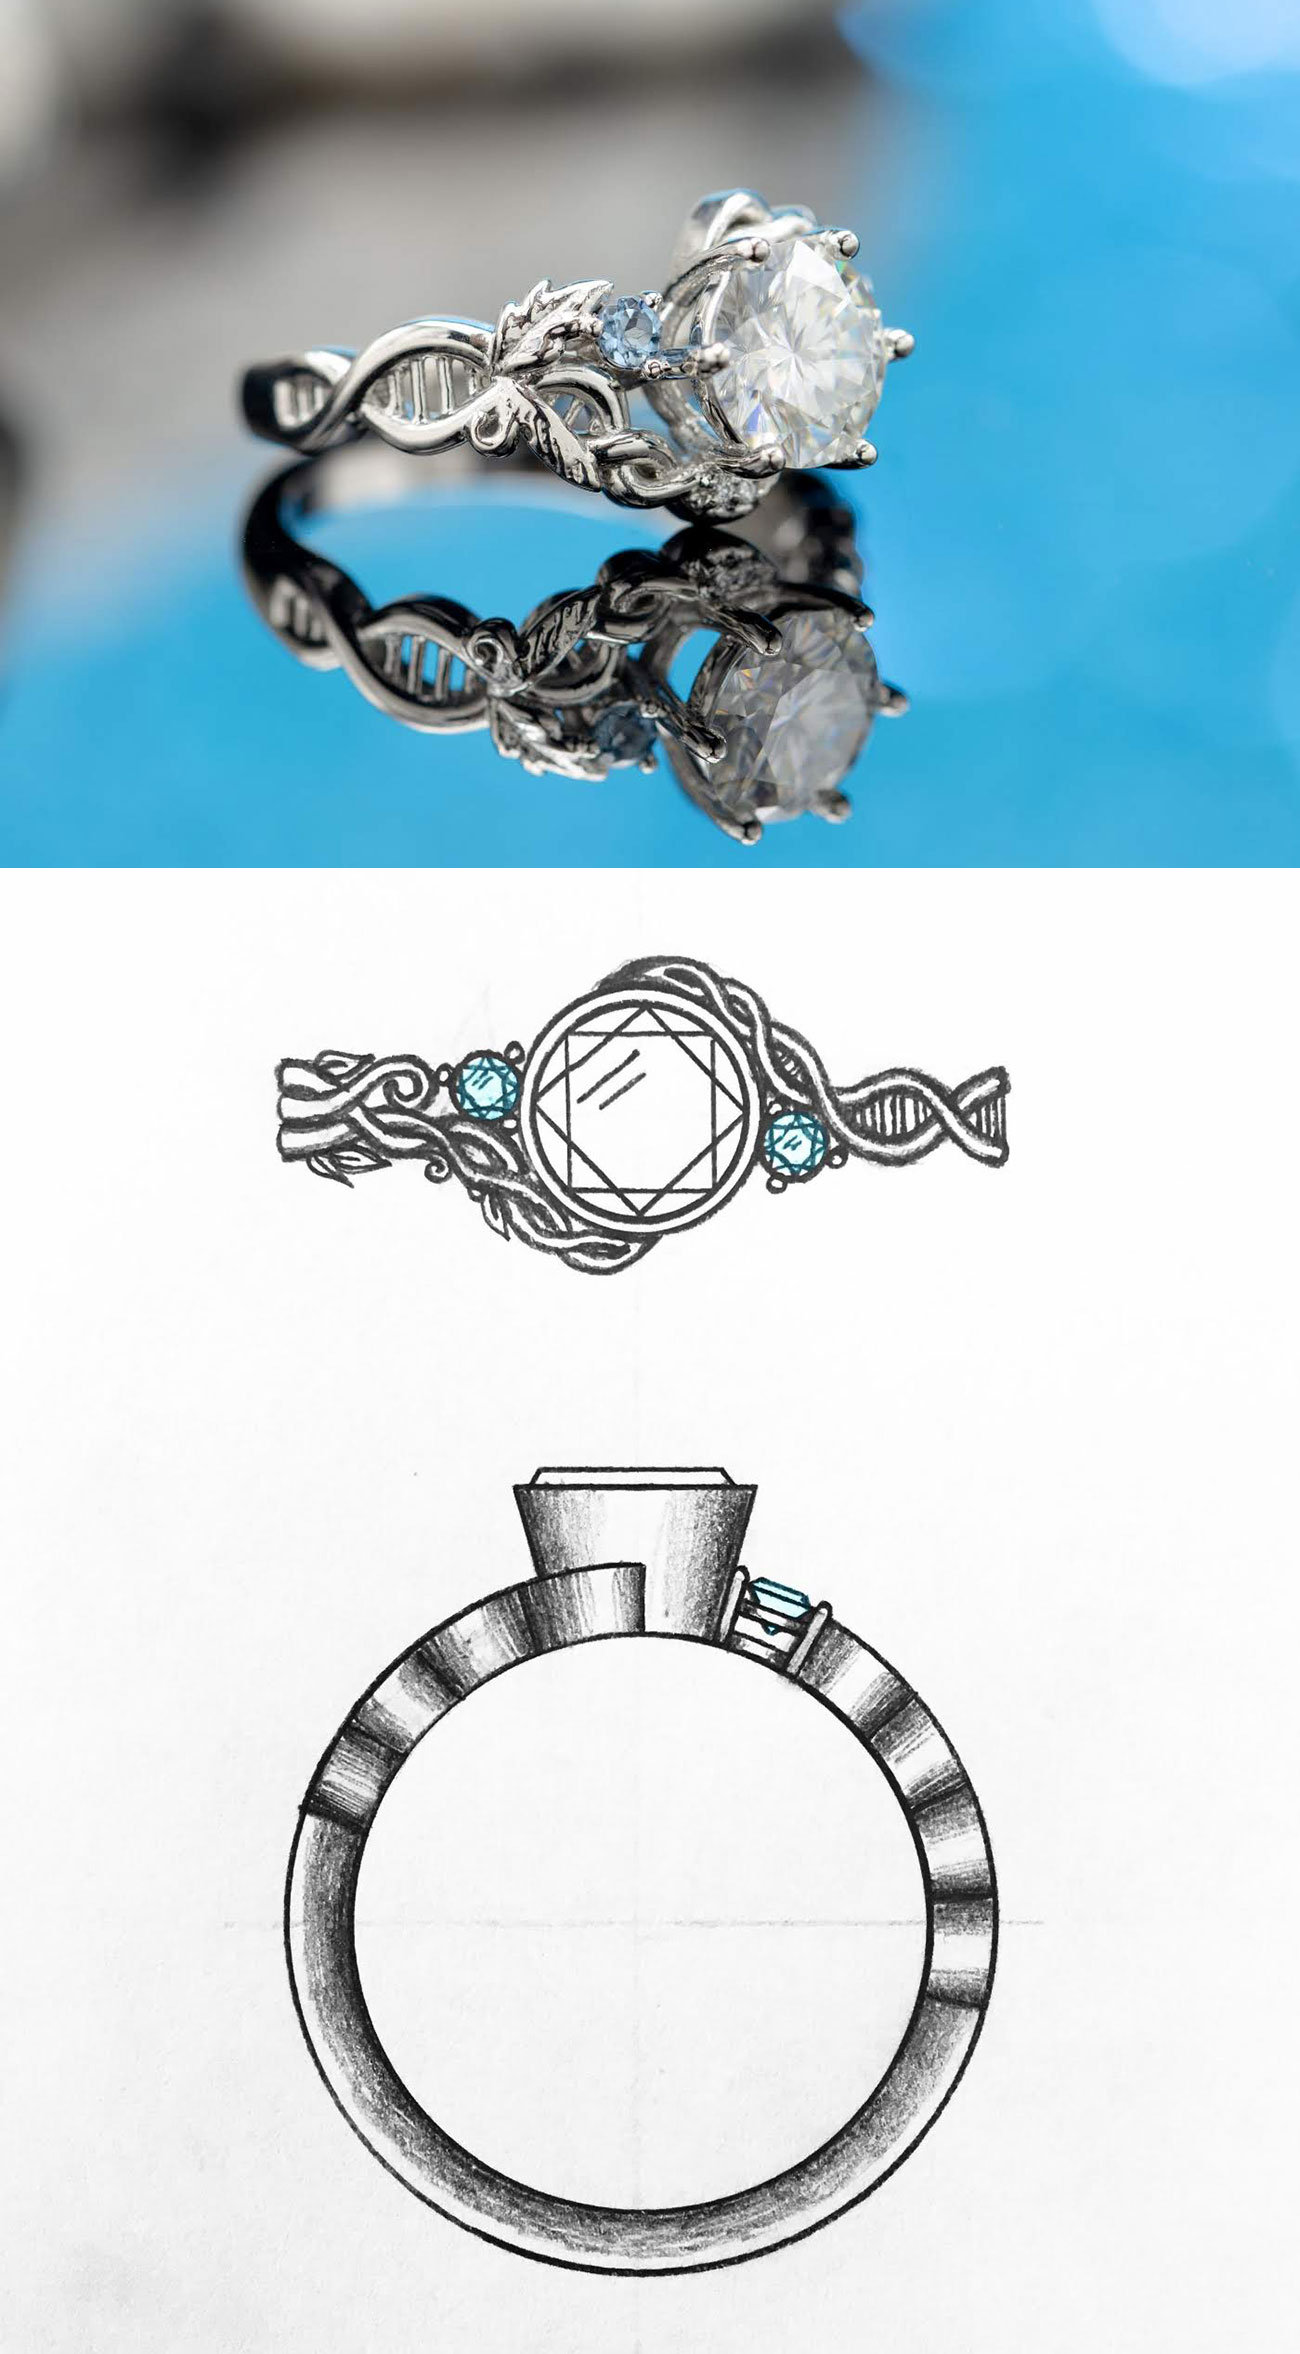 CustomMade engagement ring inspired by DNA